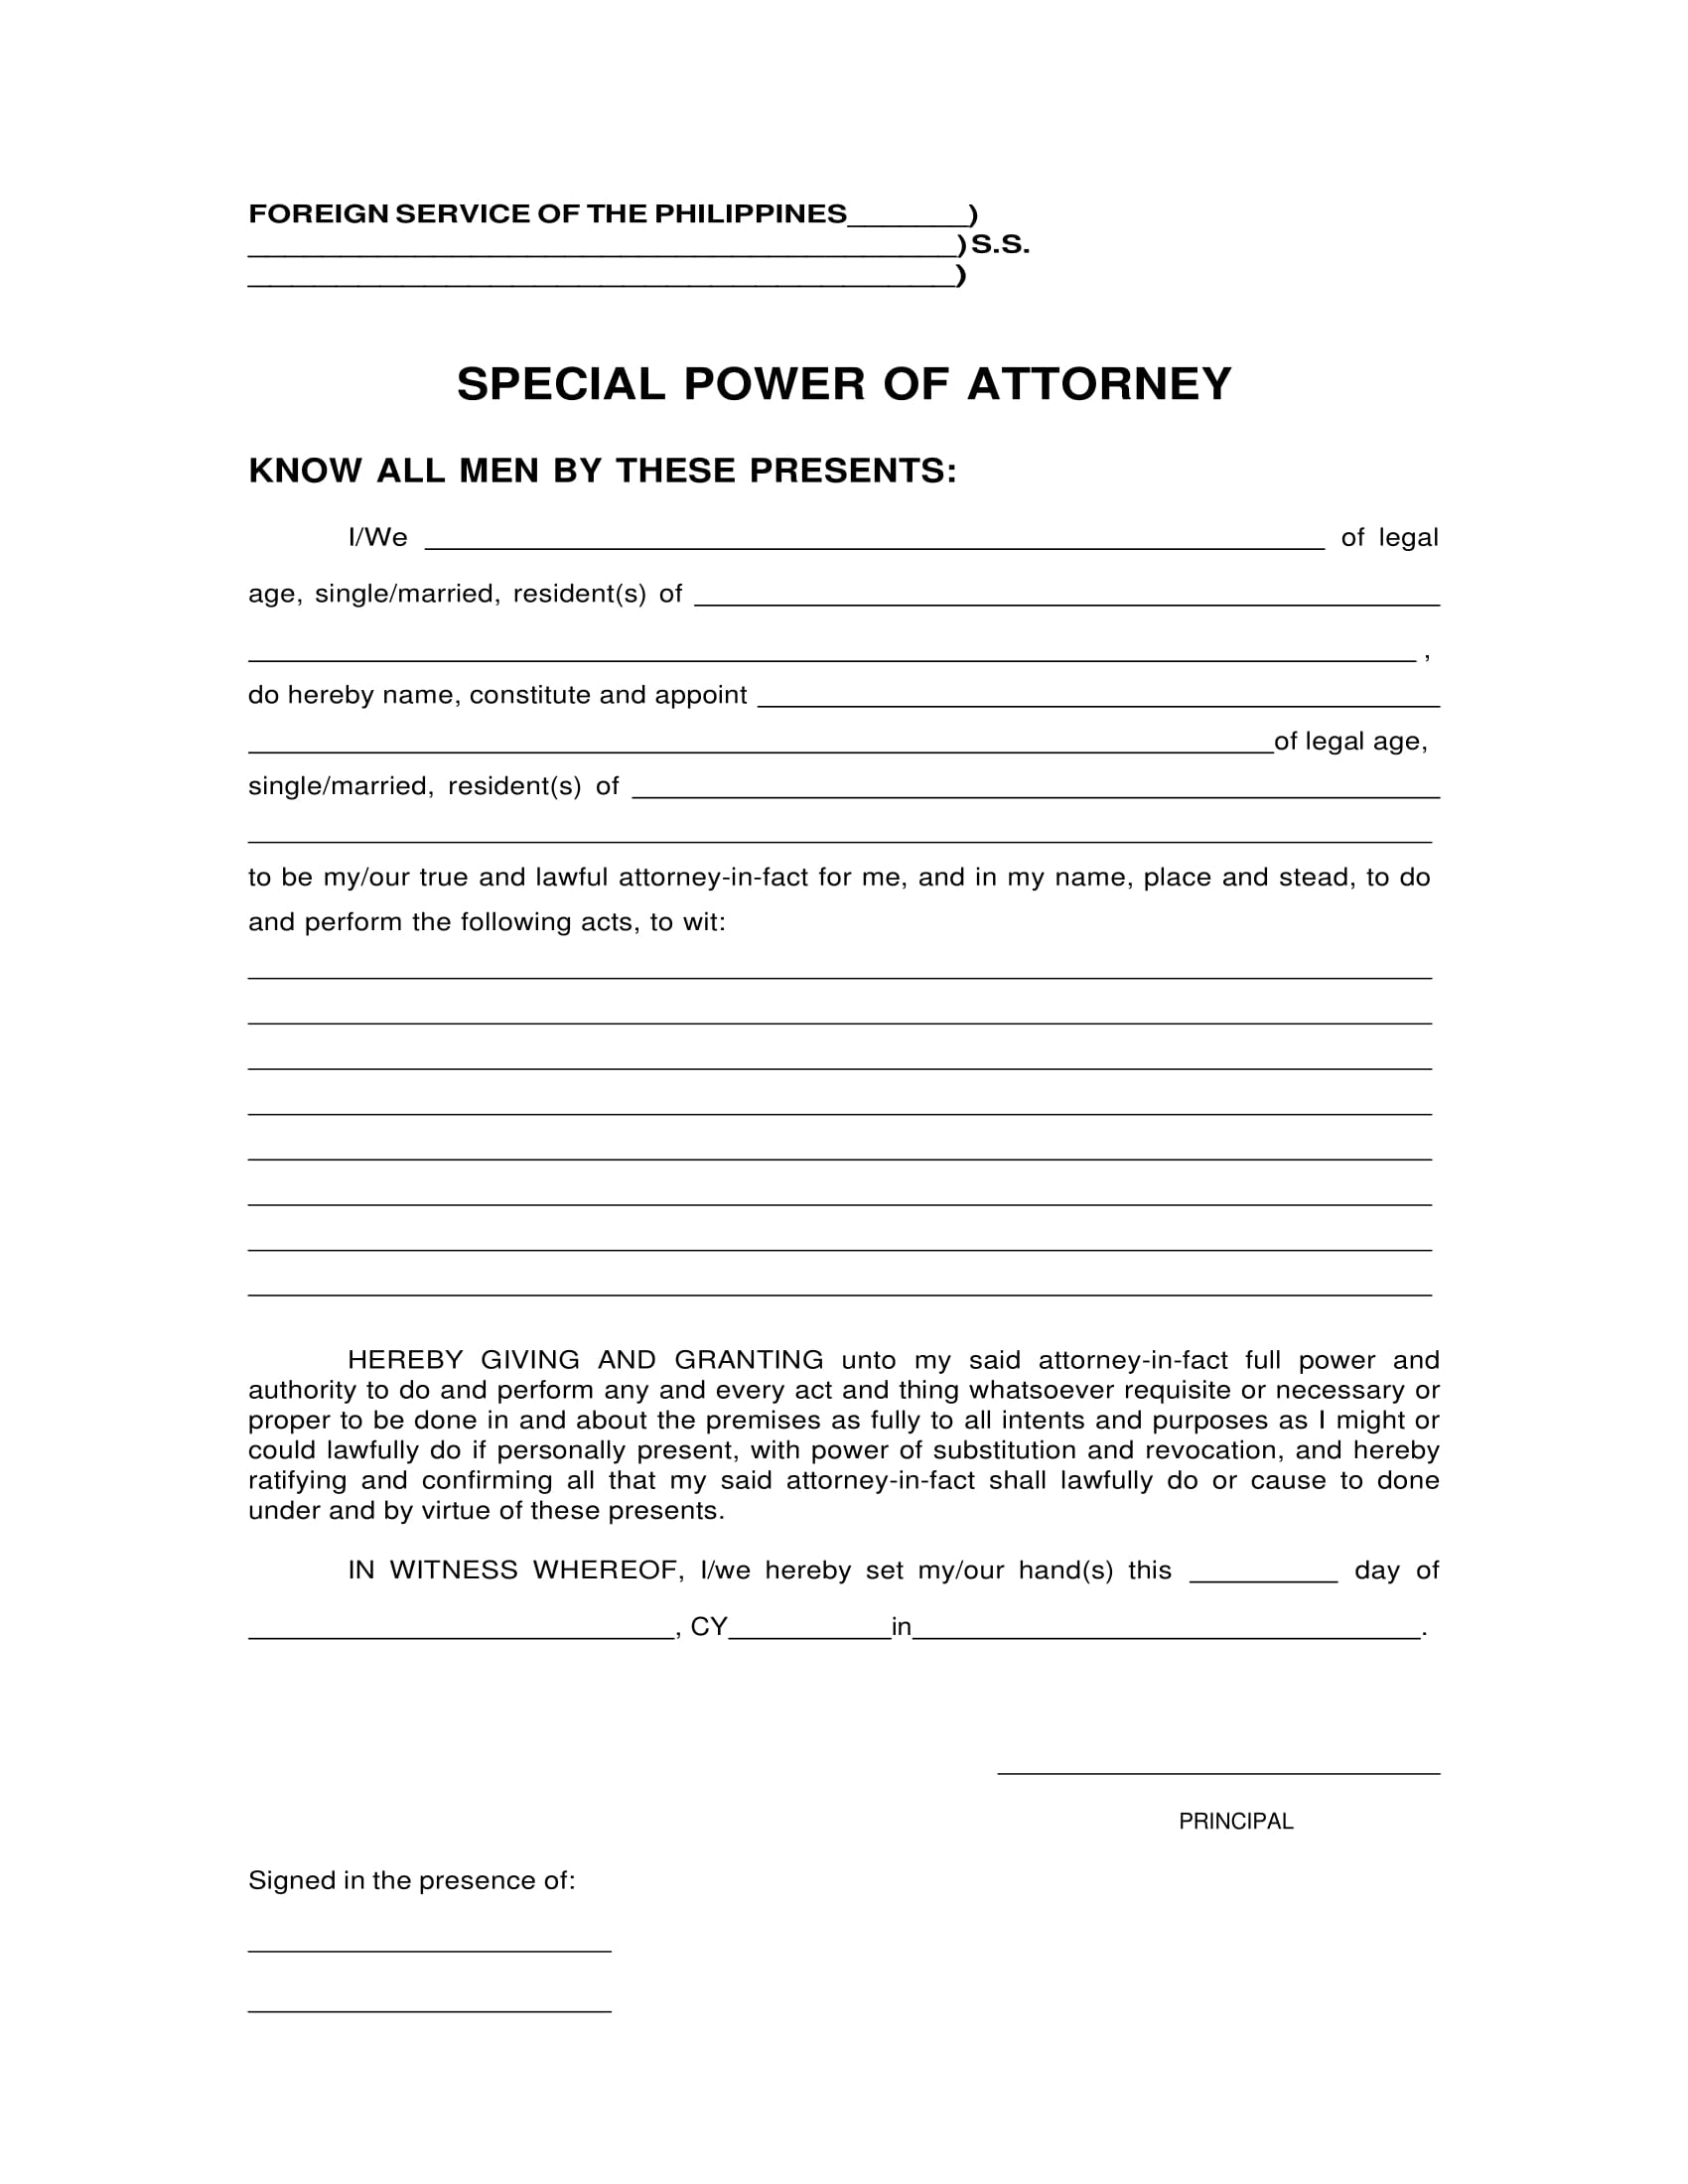 special power of attorney form 1